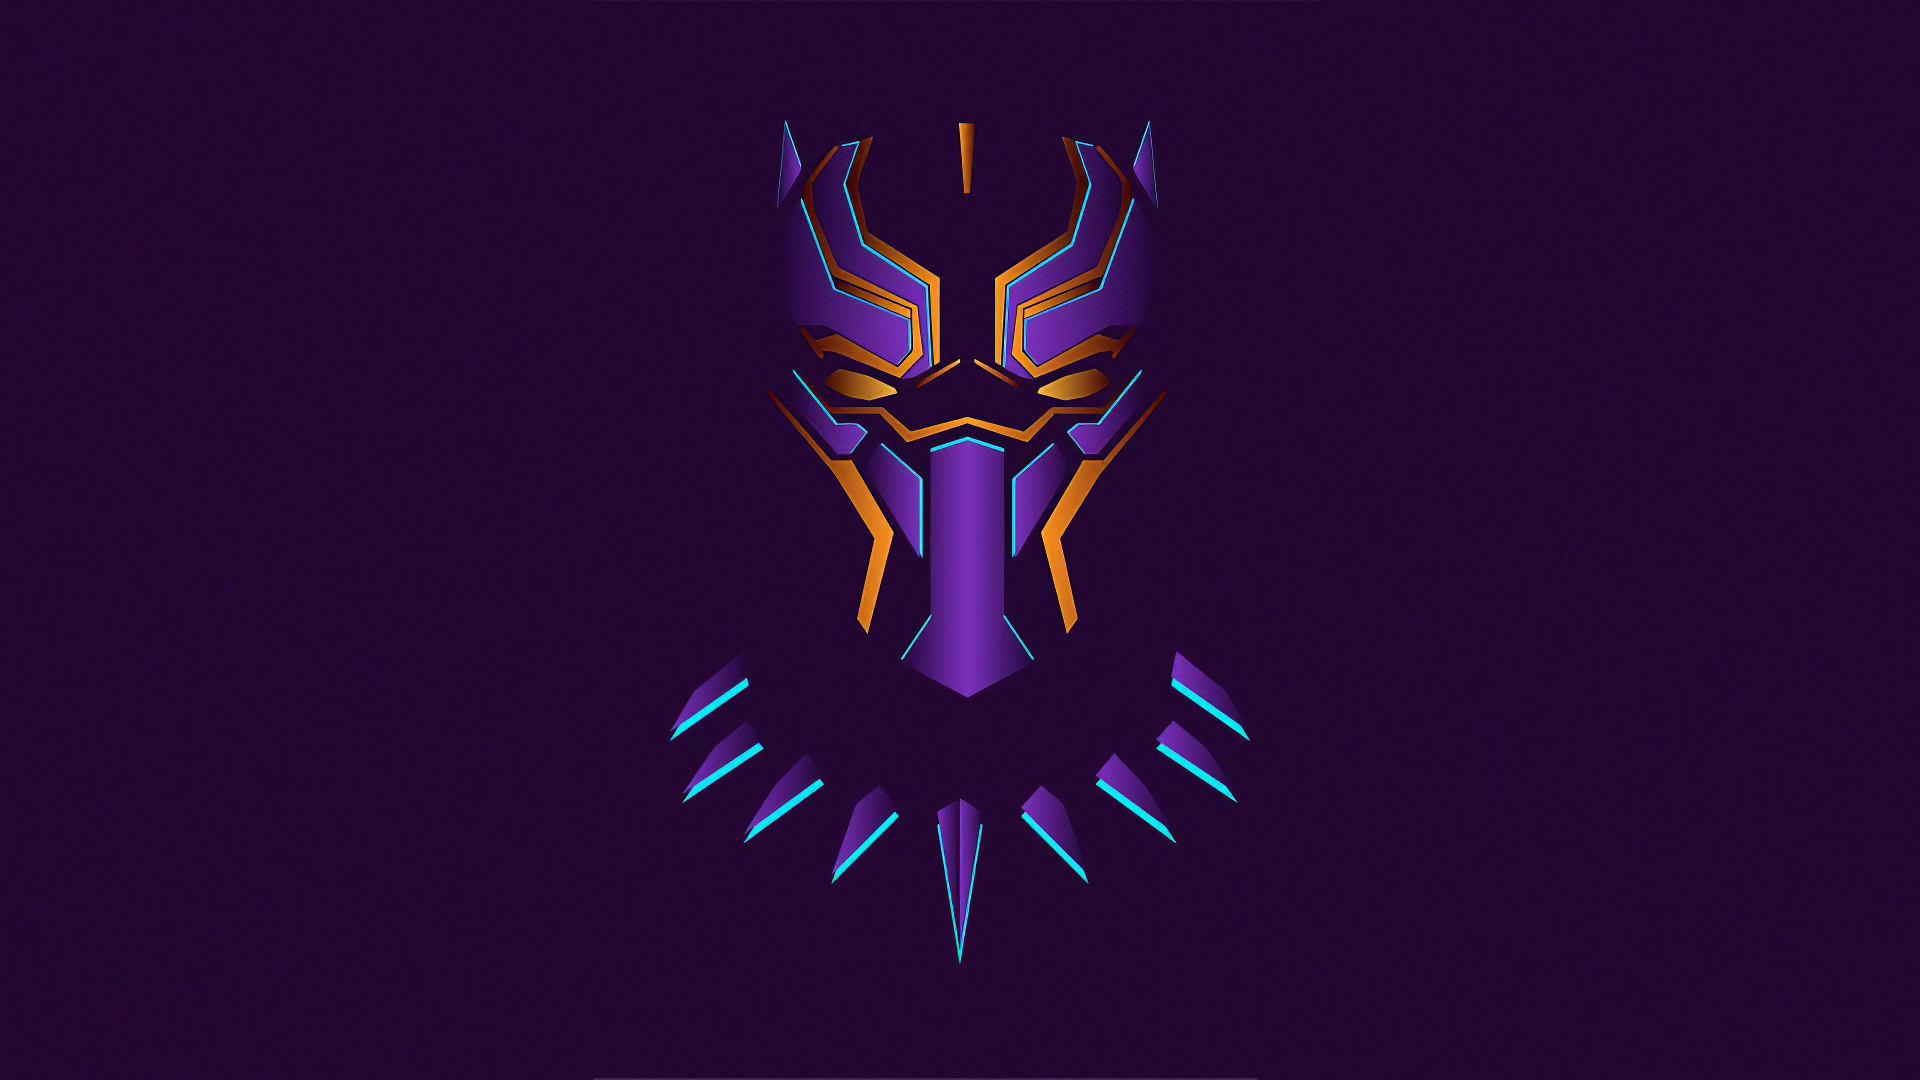 1920x1080 New Black Panther Minimalist 1080p Laptop Full Hd Wallpaper Hd Minimalist 4k Wallpapers Images Photos And Background